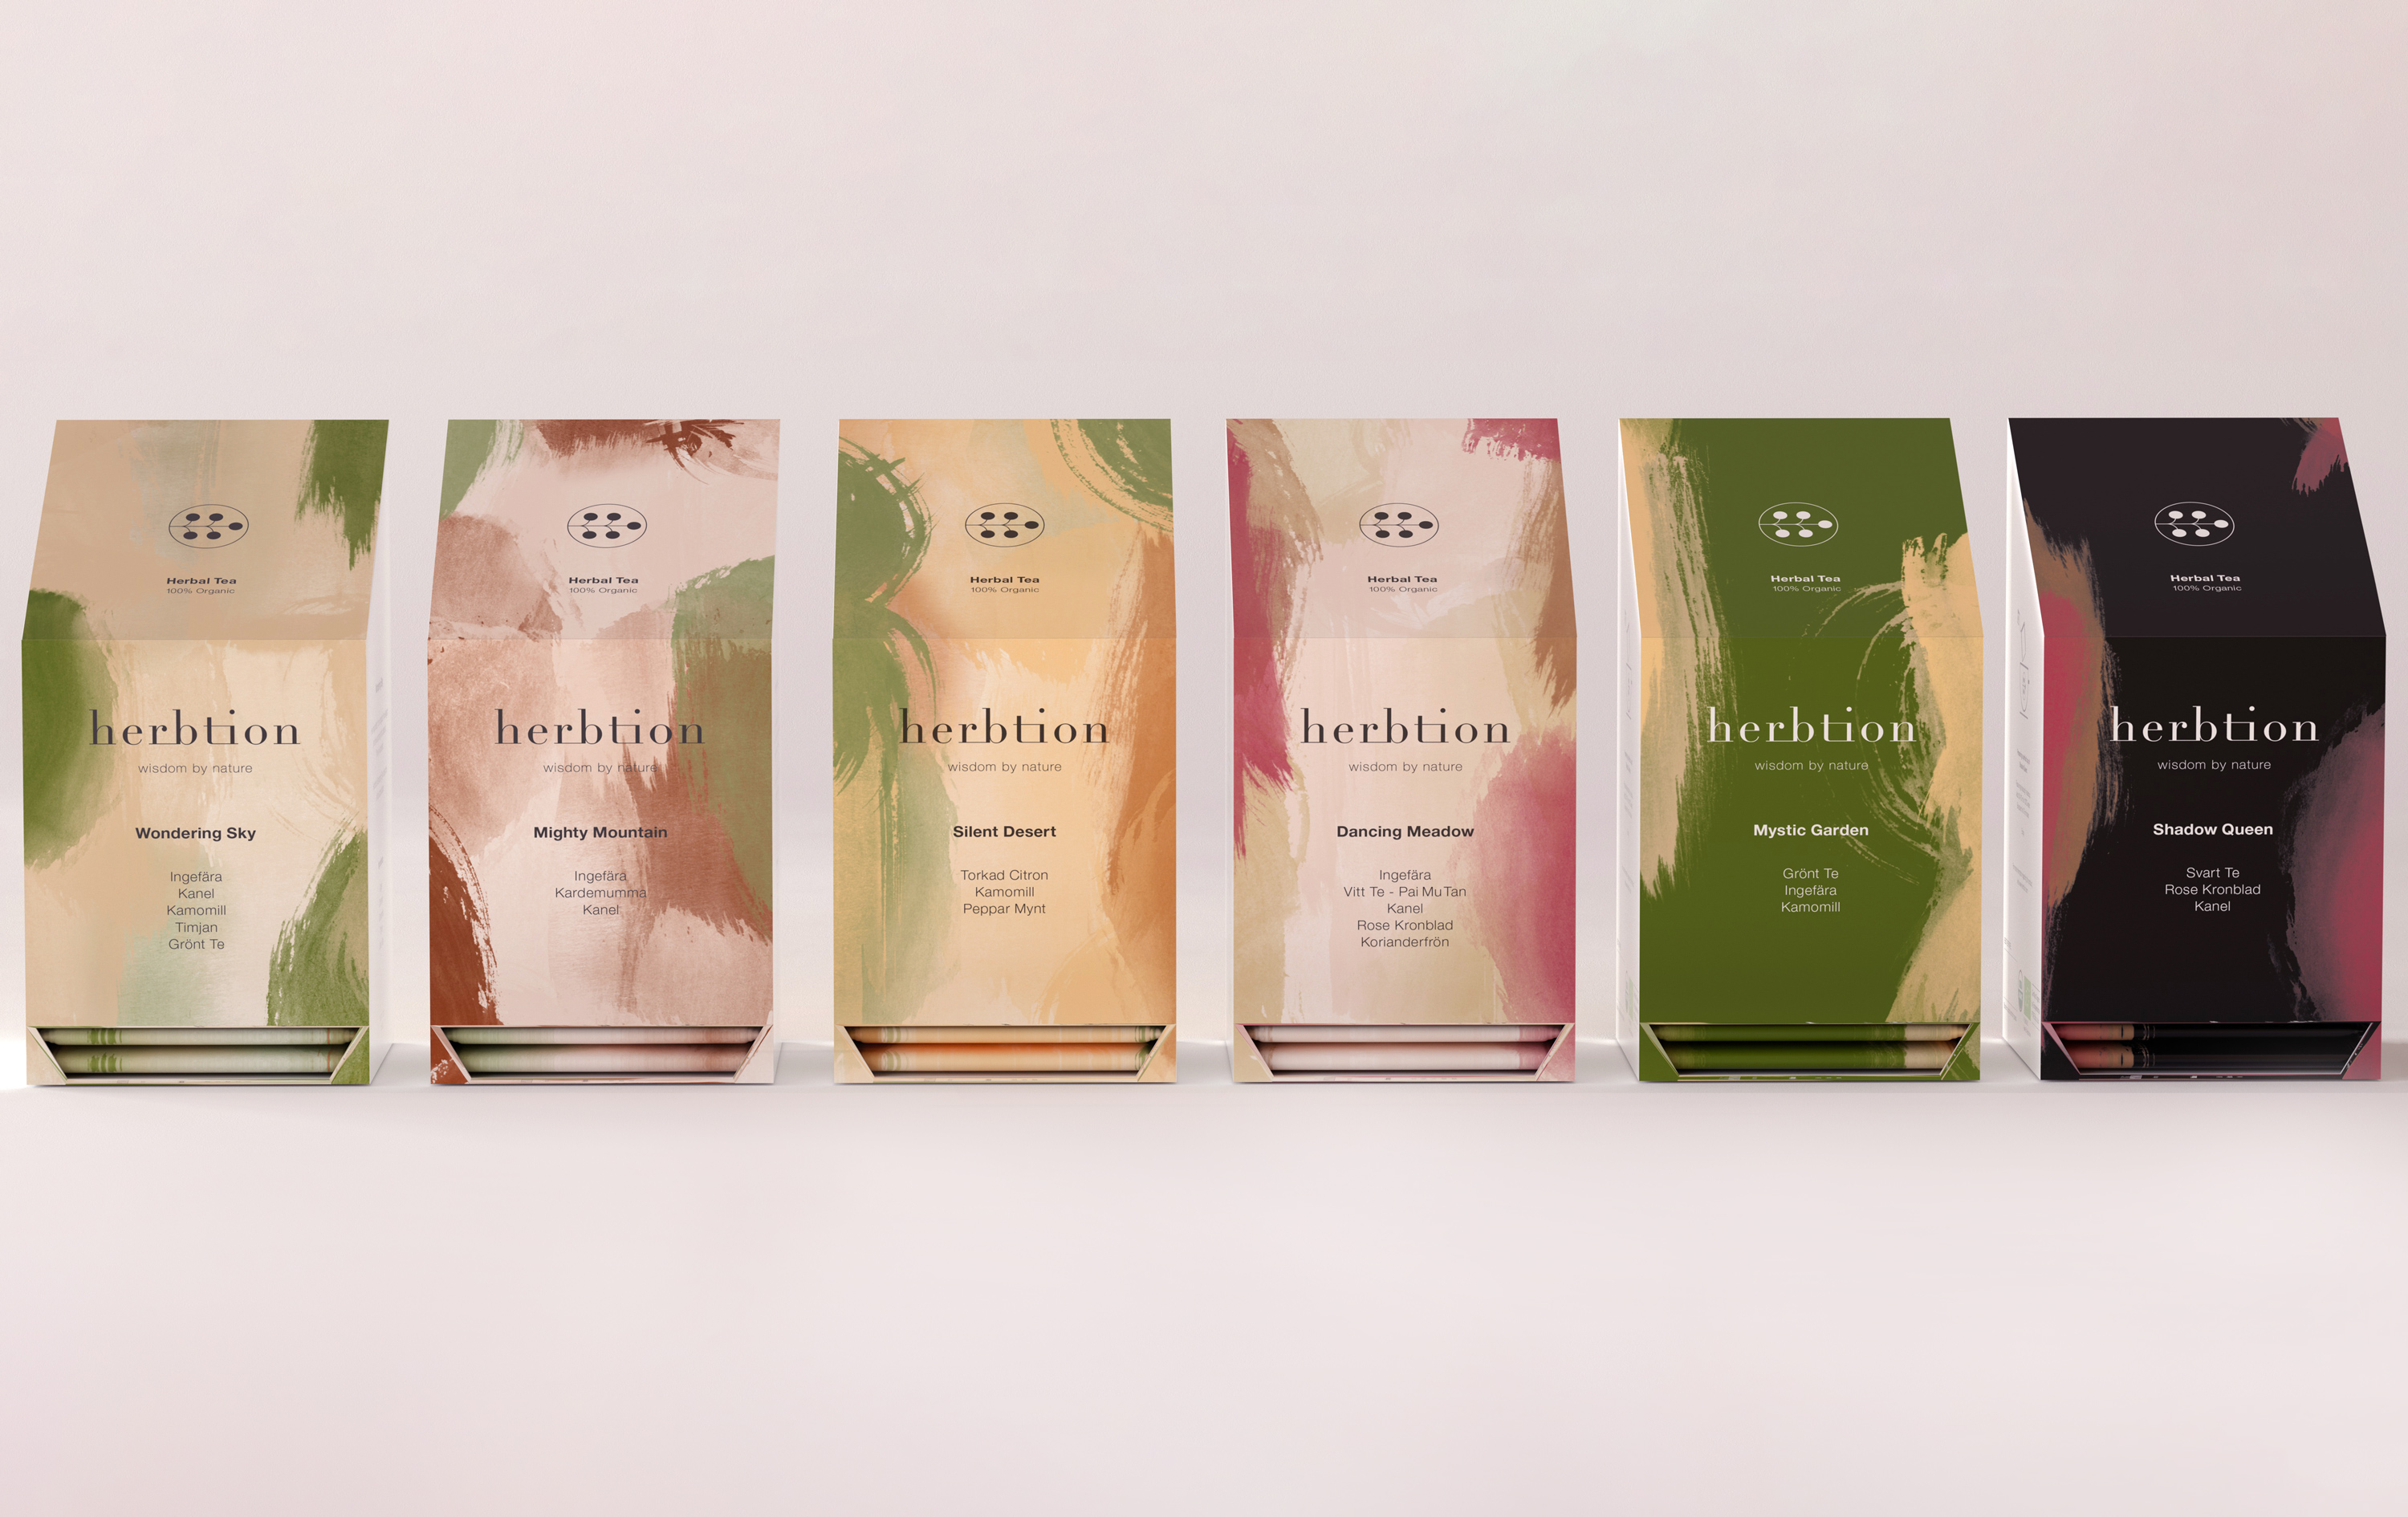 Herbtion Brand Identity and Packaging Design Created by Studio Koly